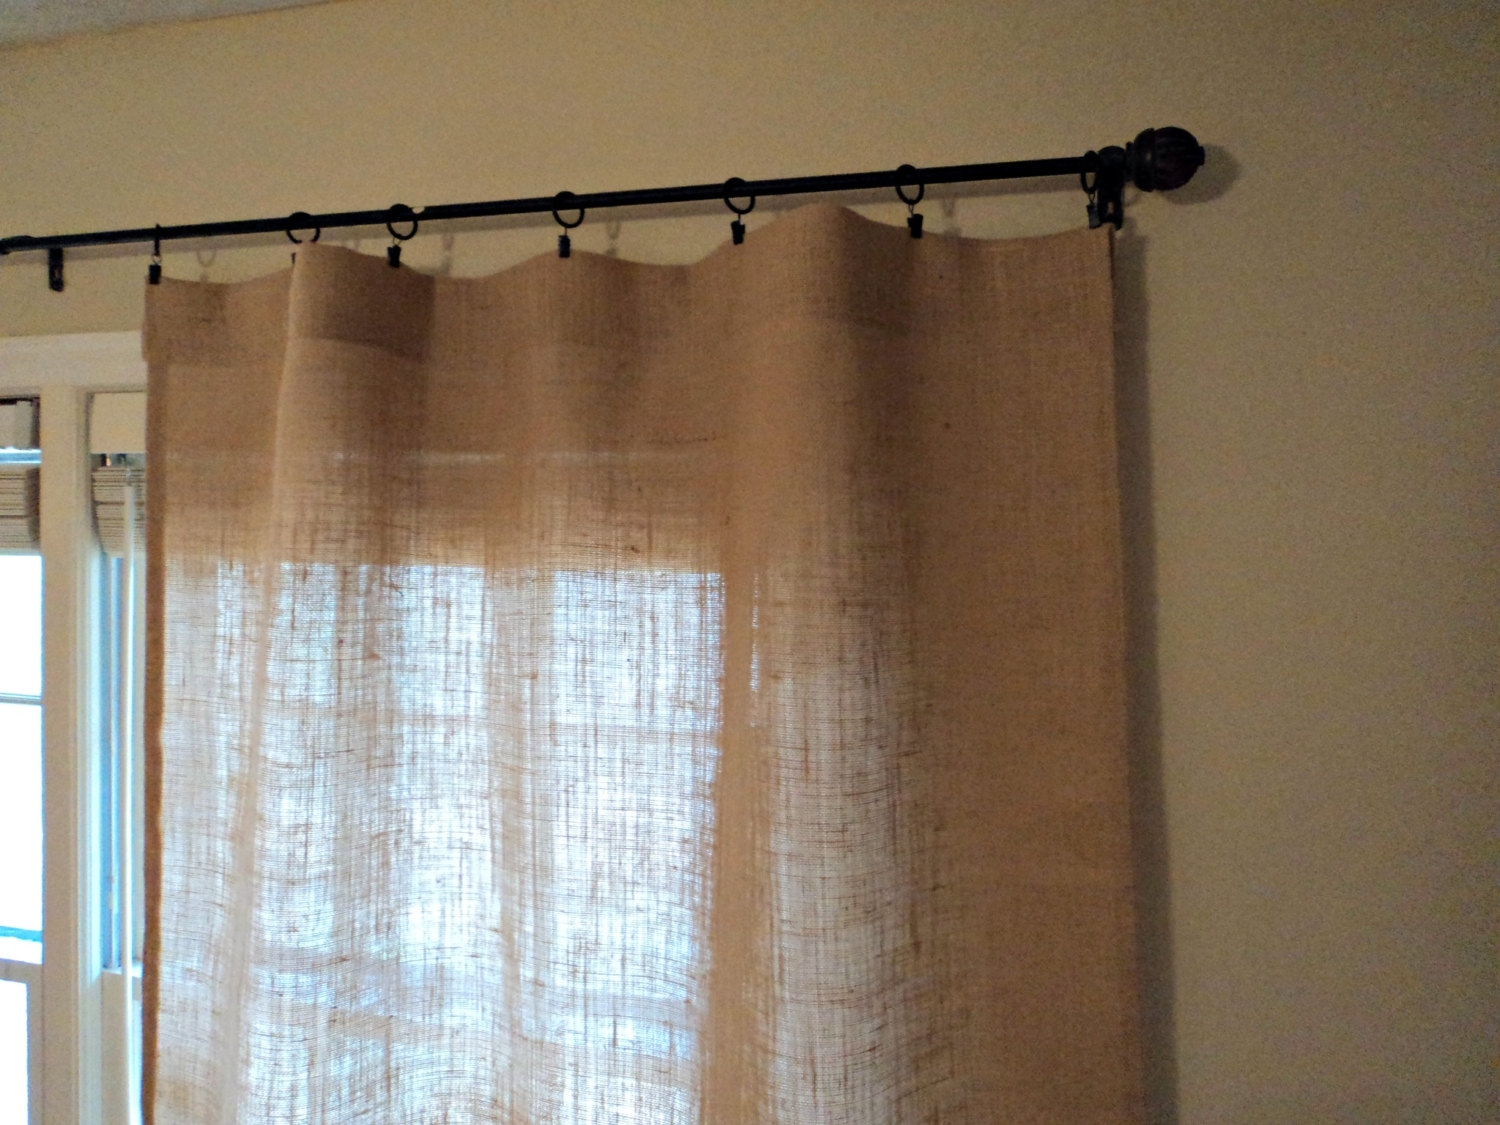 No Odor Burlap Curtains Hemmed Curtains Select Your Length Throughout Turquoise Burlap Curtains (Image 14 of 15)